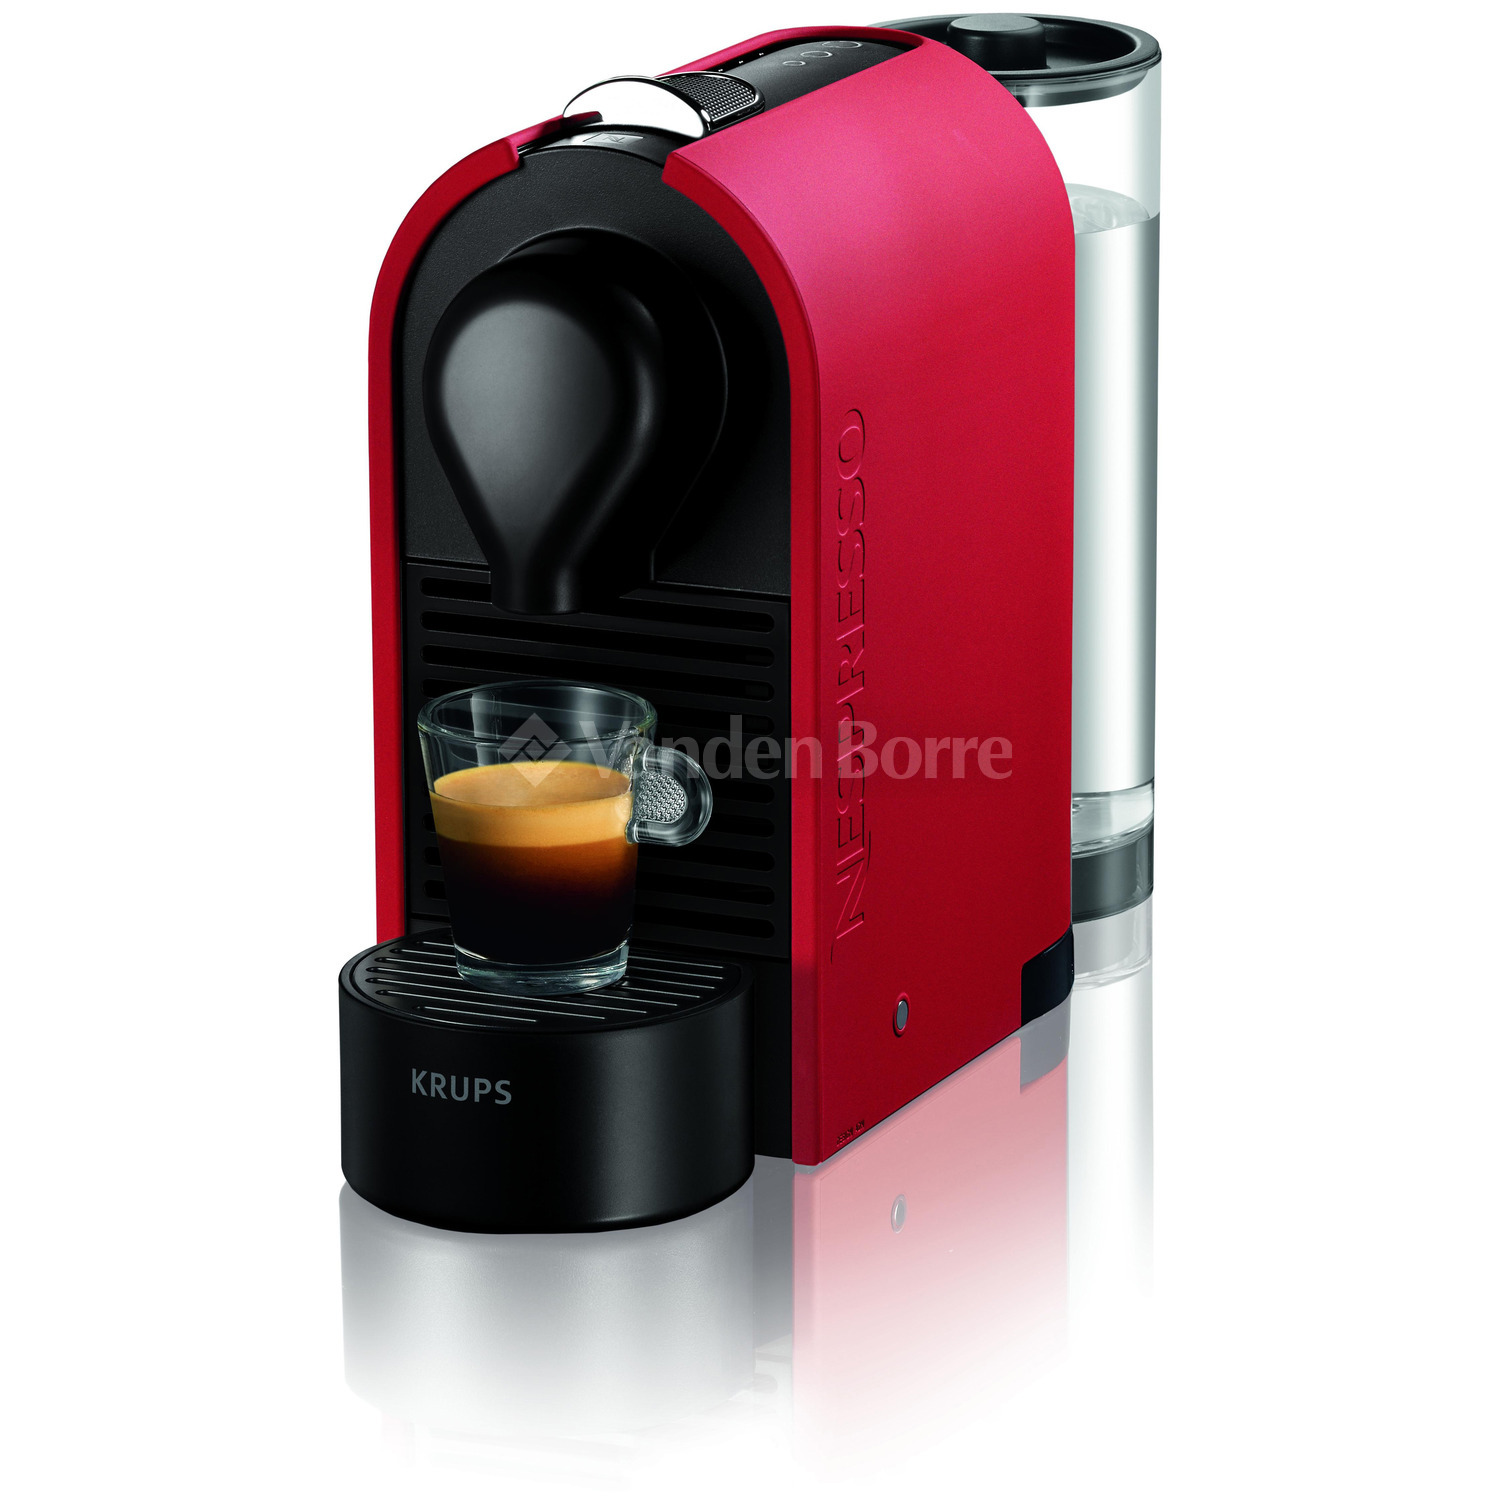 krups nespresso u xn2505 red chez vanden borre comparez et achetez facilement. Black Bedroom Furniture Sets. Home Design Ideas